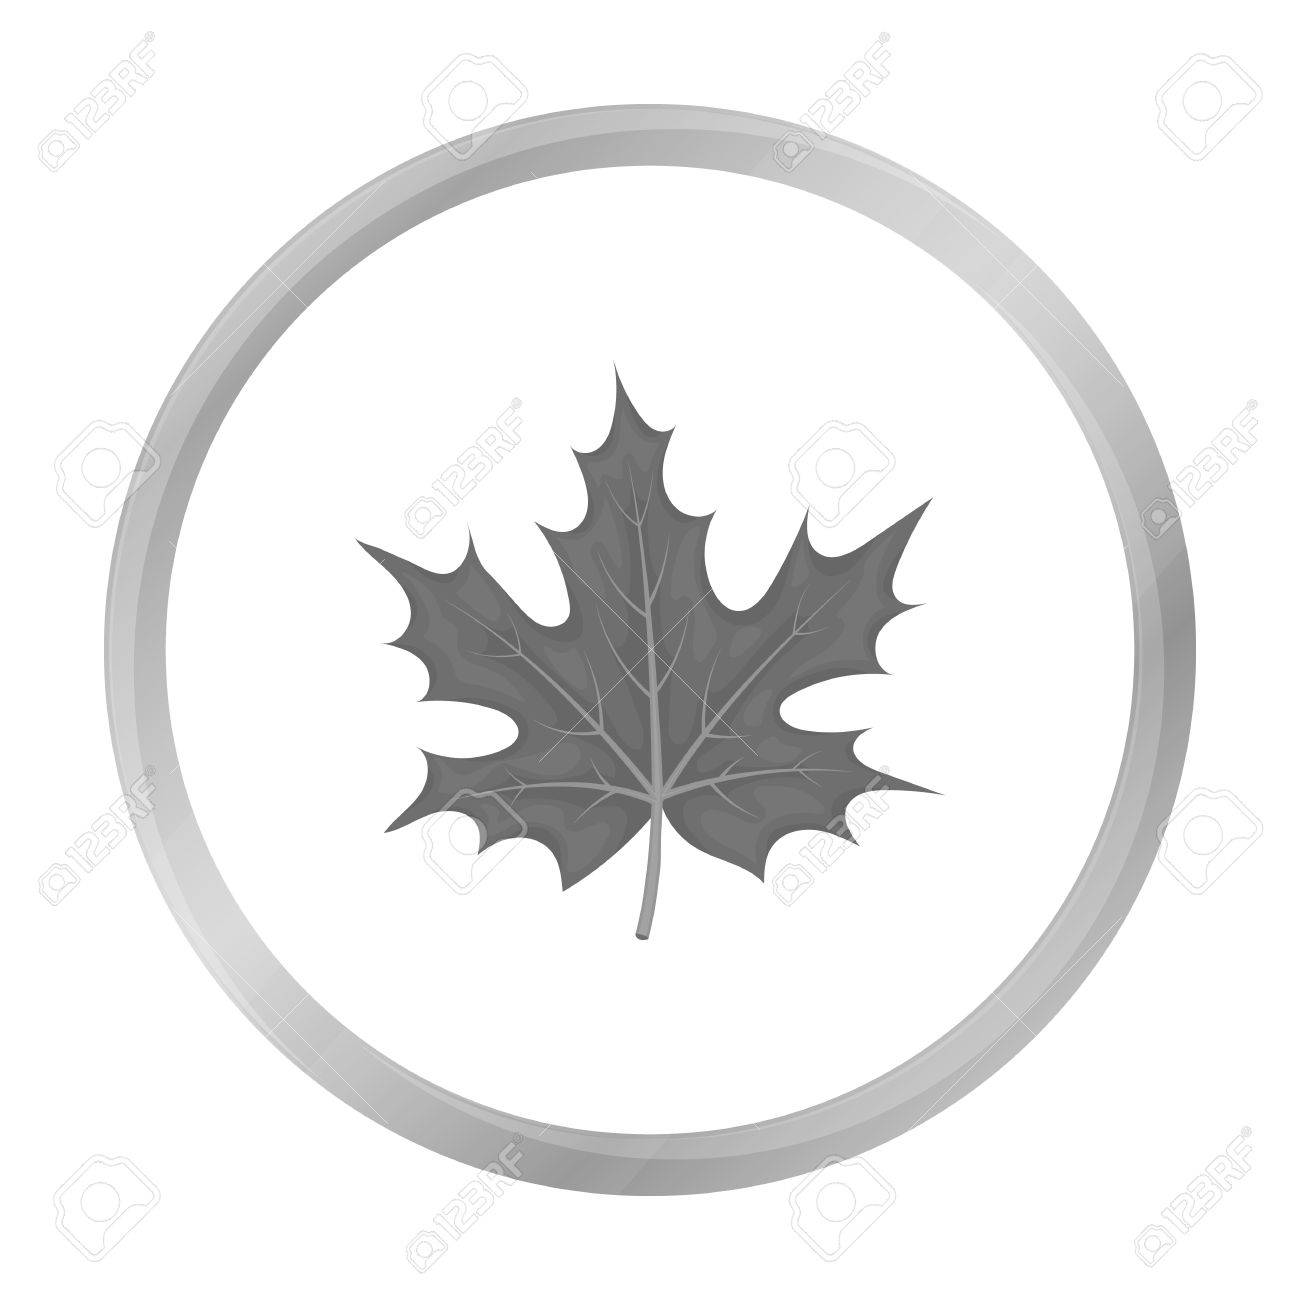 Maple Leaf Icon In Monochrome Style Isolated On White Background